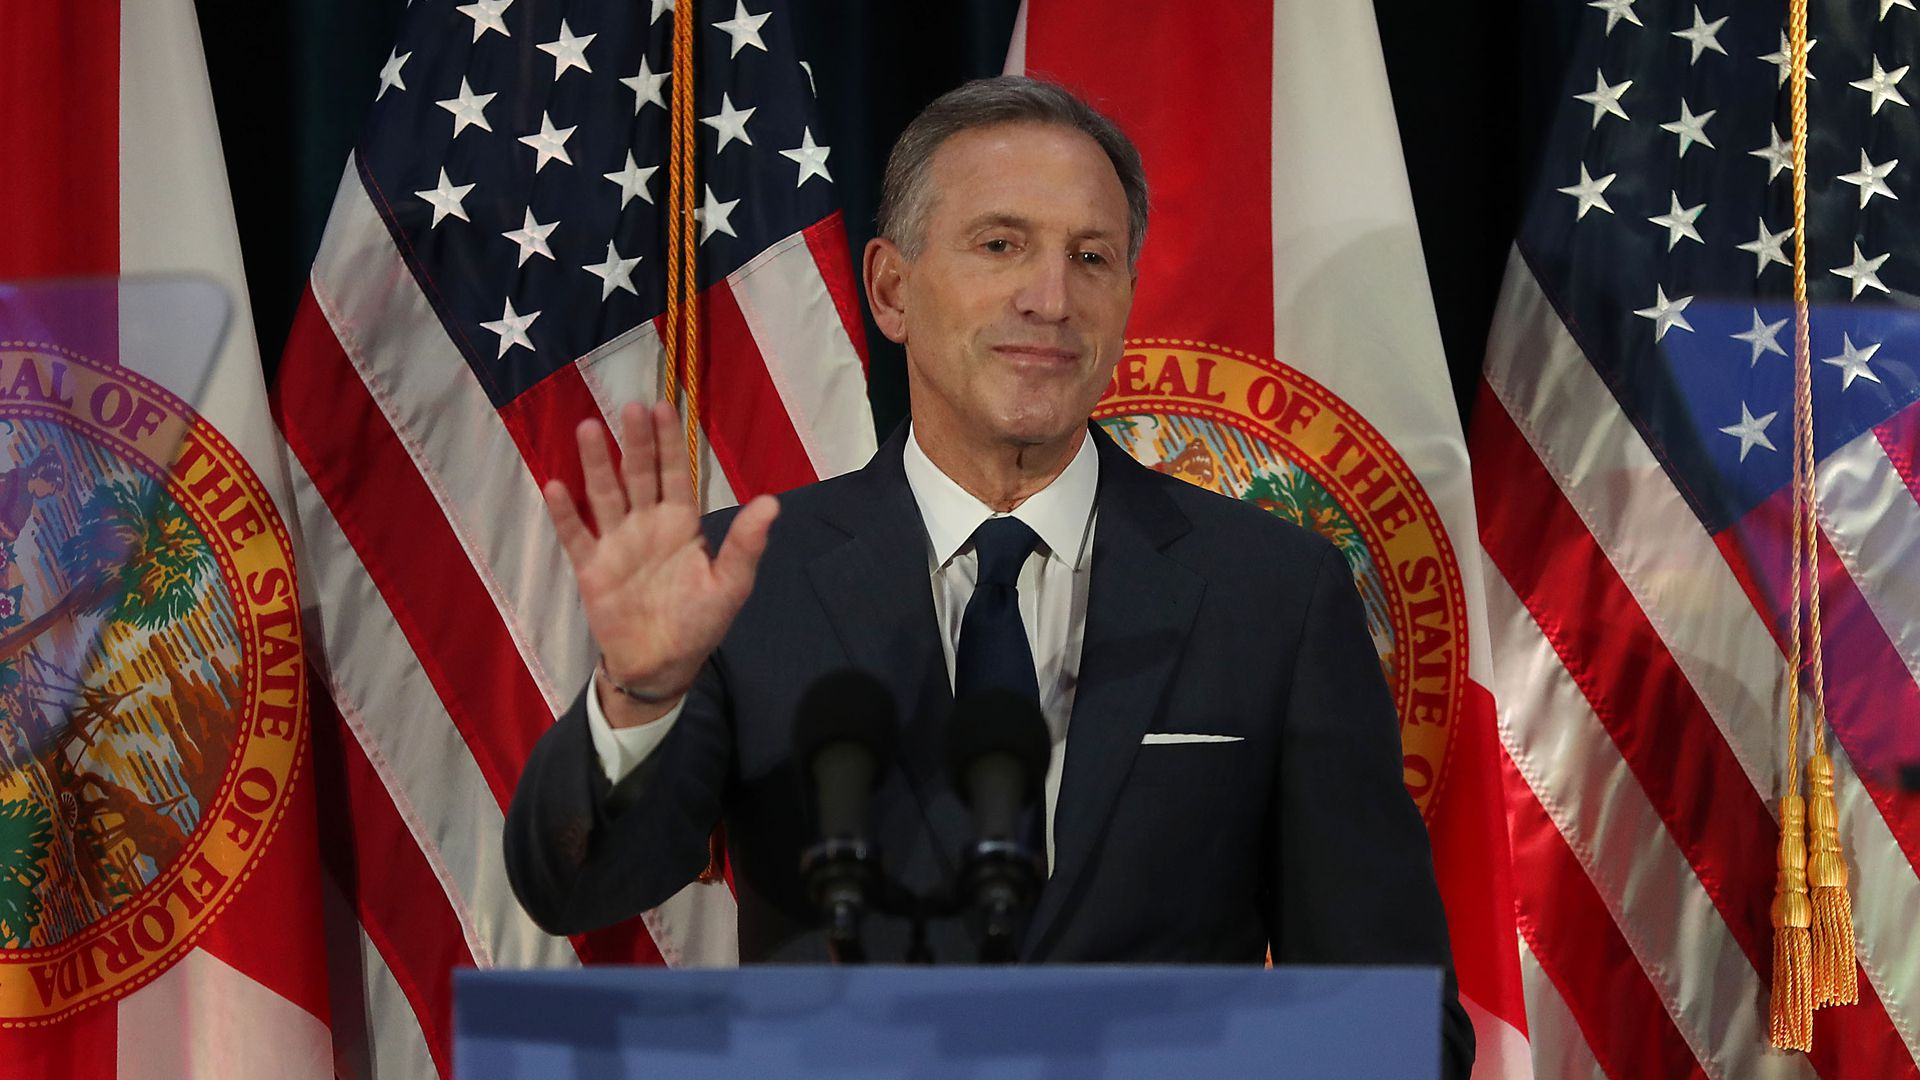 Former Starbucks CEO Howard Schultz speaks at Miami Dade College in March